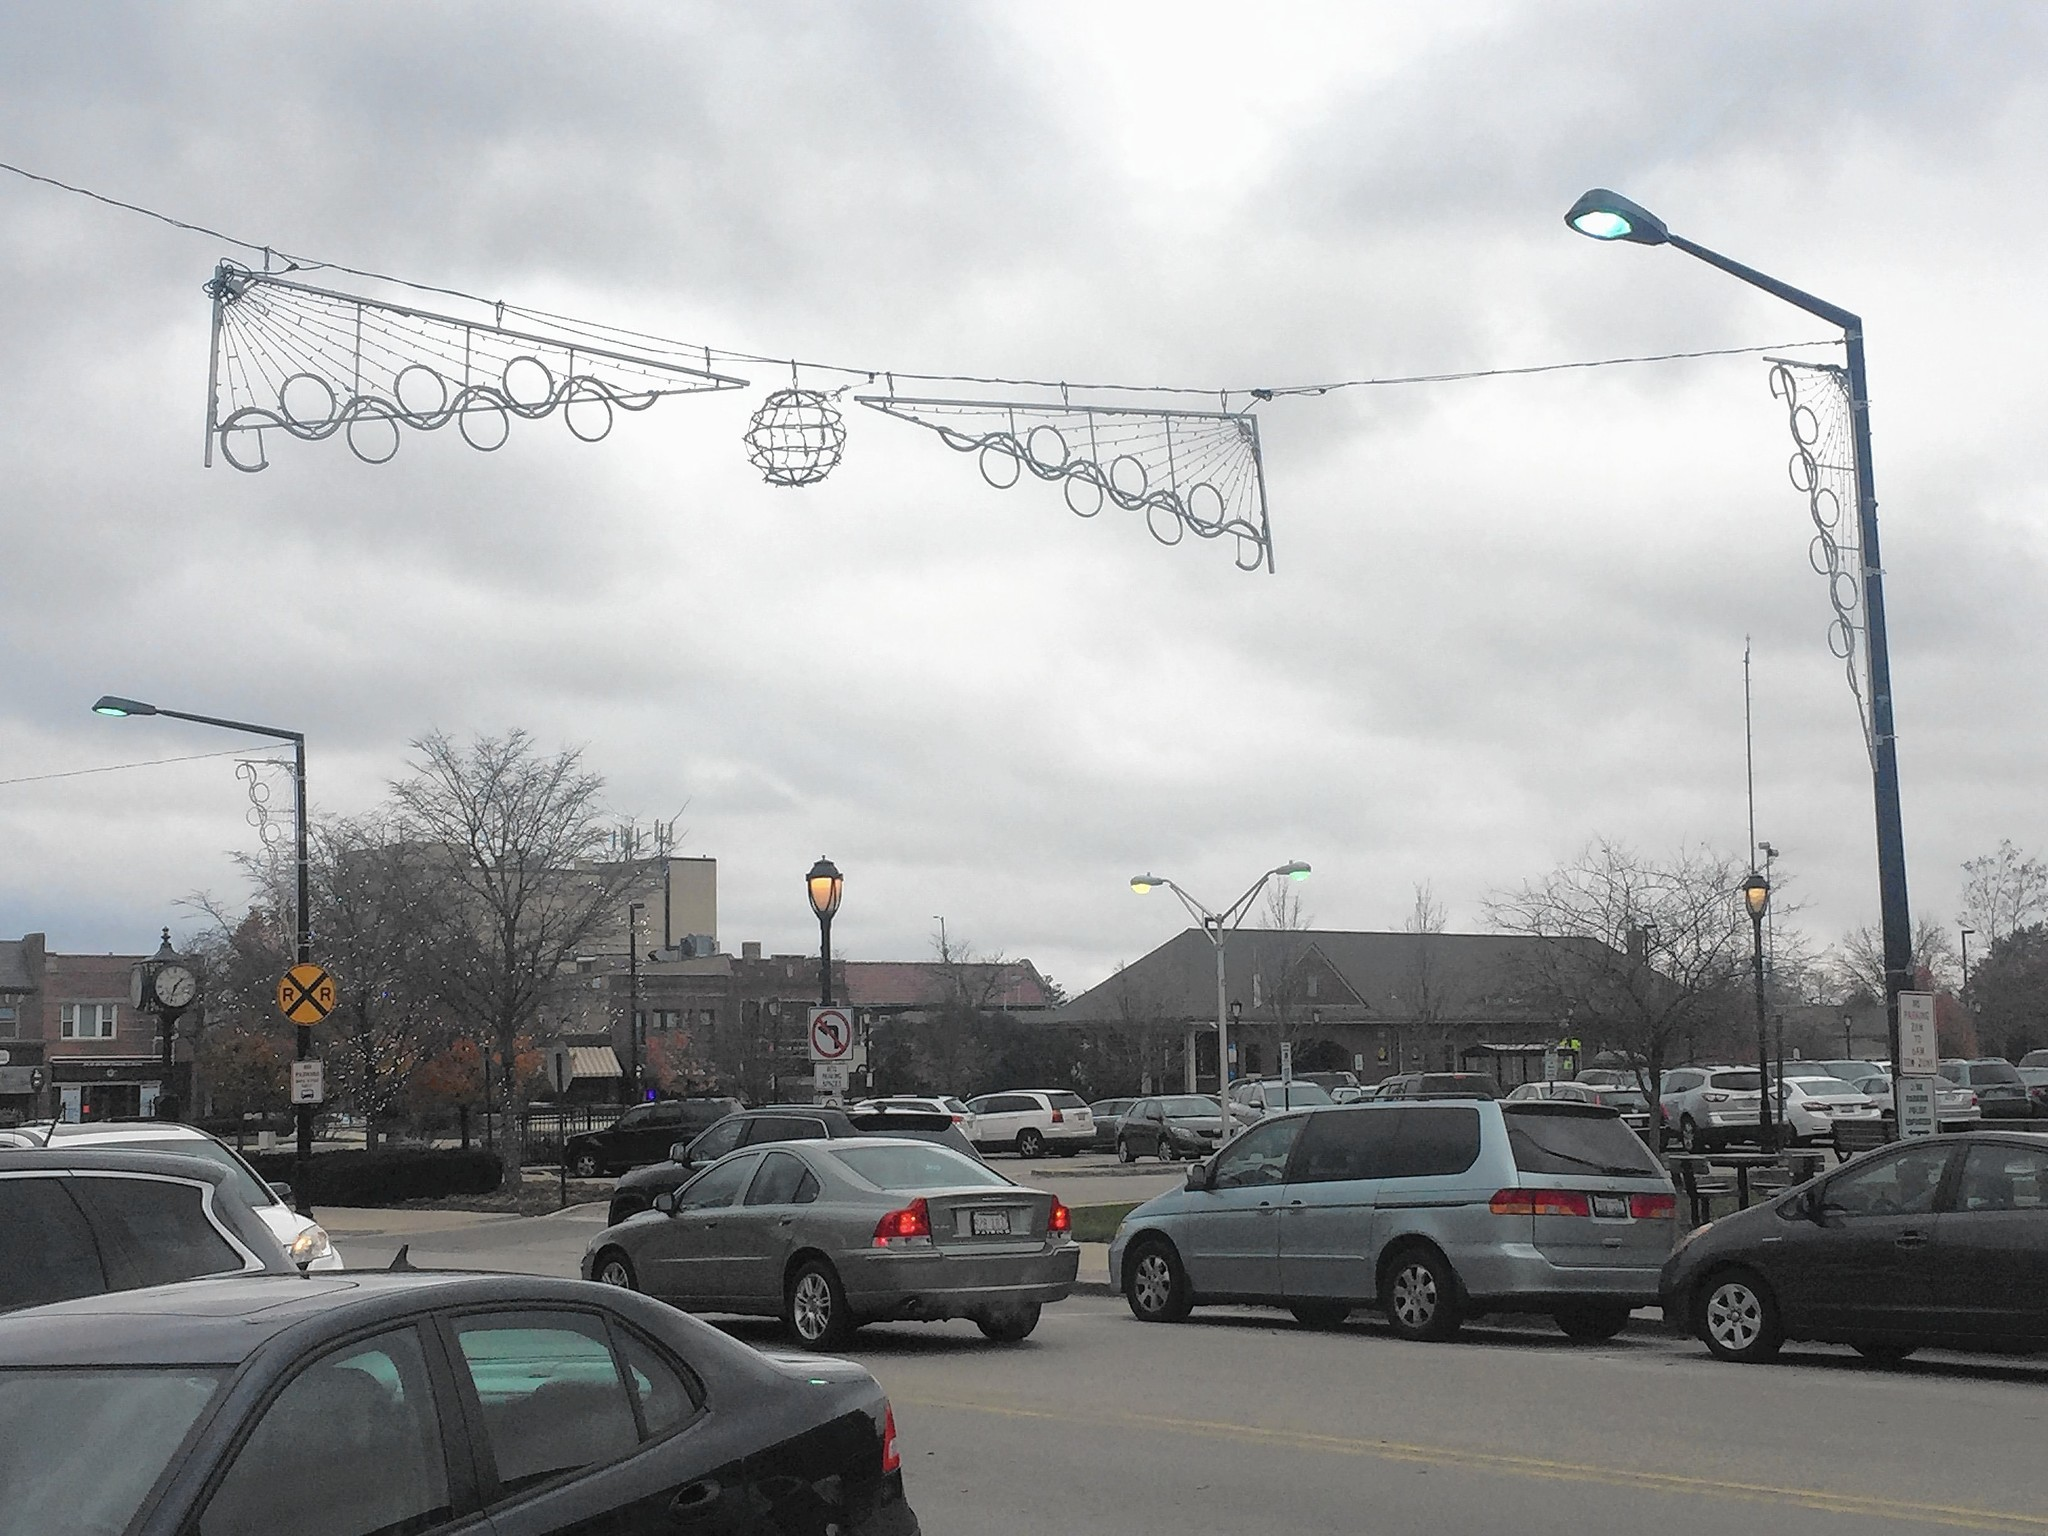 Some holiday decorations come down in Uptown Park Ridge - Park Ridge ...